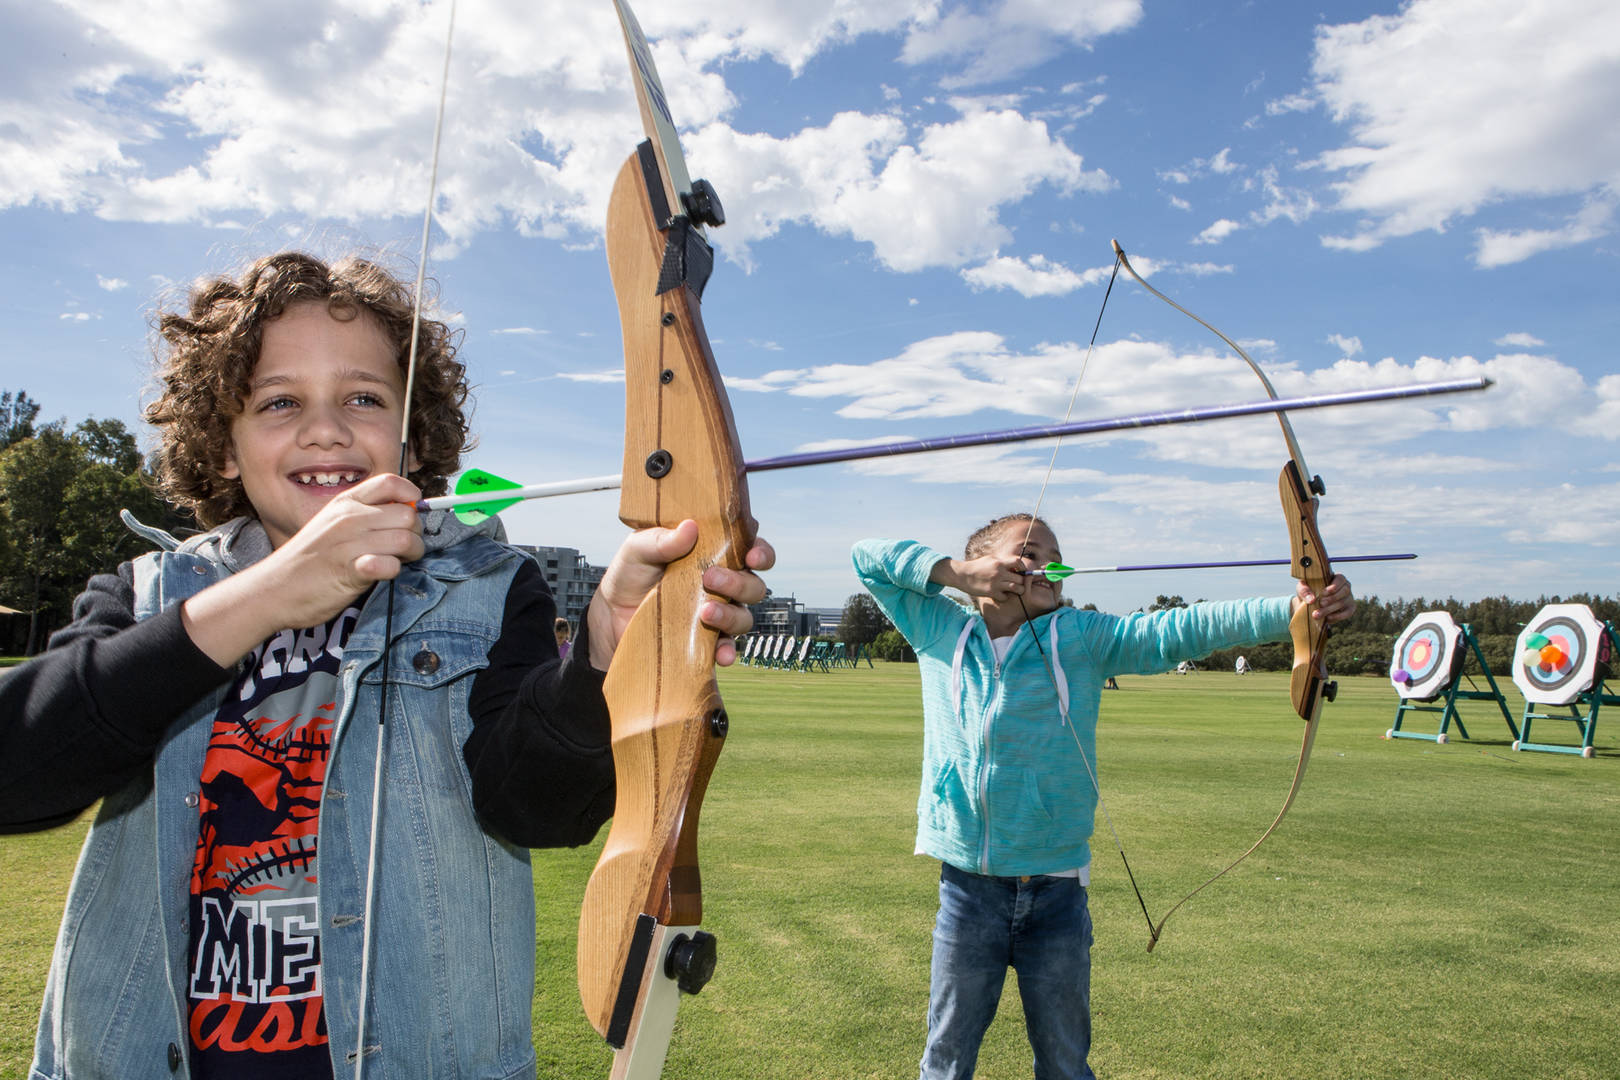 Archery School Holiday Programs Sydney Olympic Park